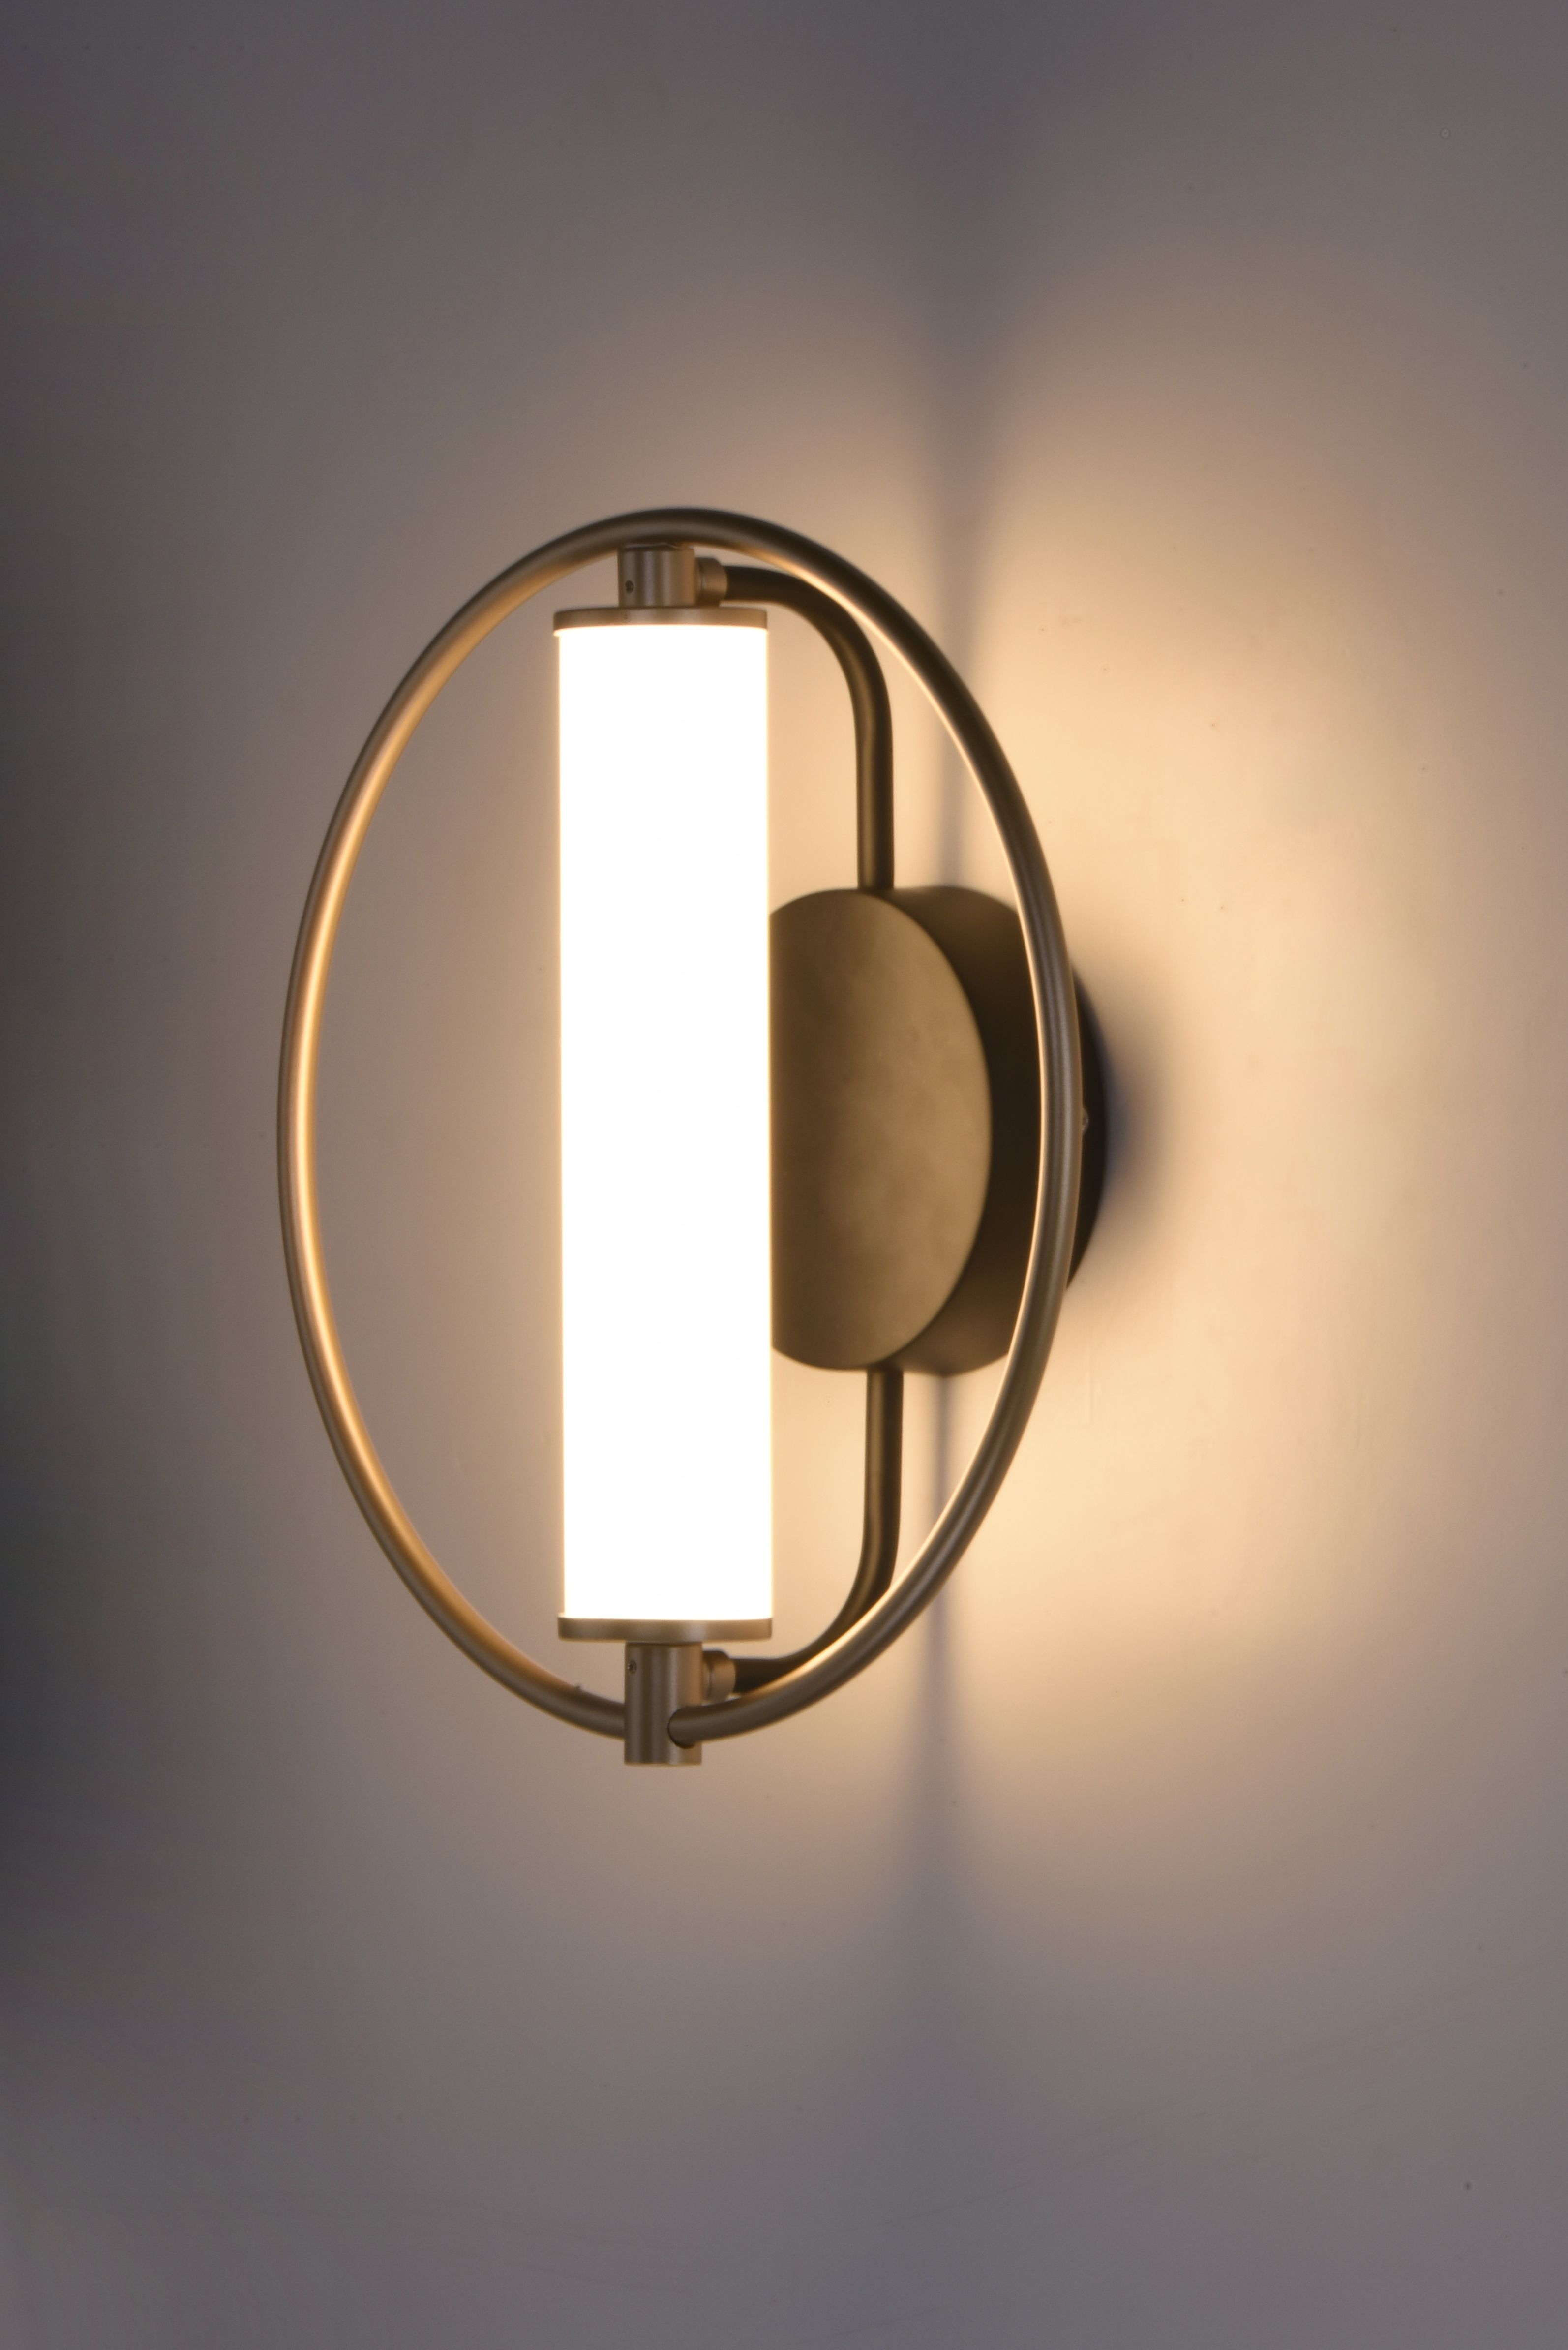 Flare Led Wall Sconce Wall Sconce Maxim Lighting Wall Lights Wall Sconces Wall Lights Living Room